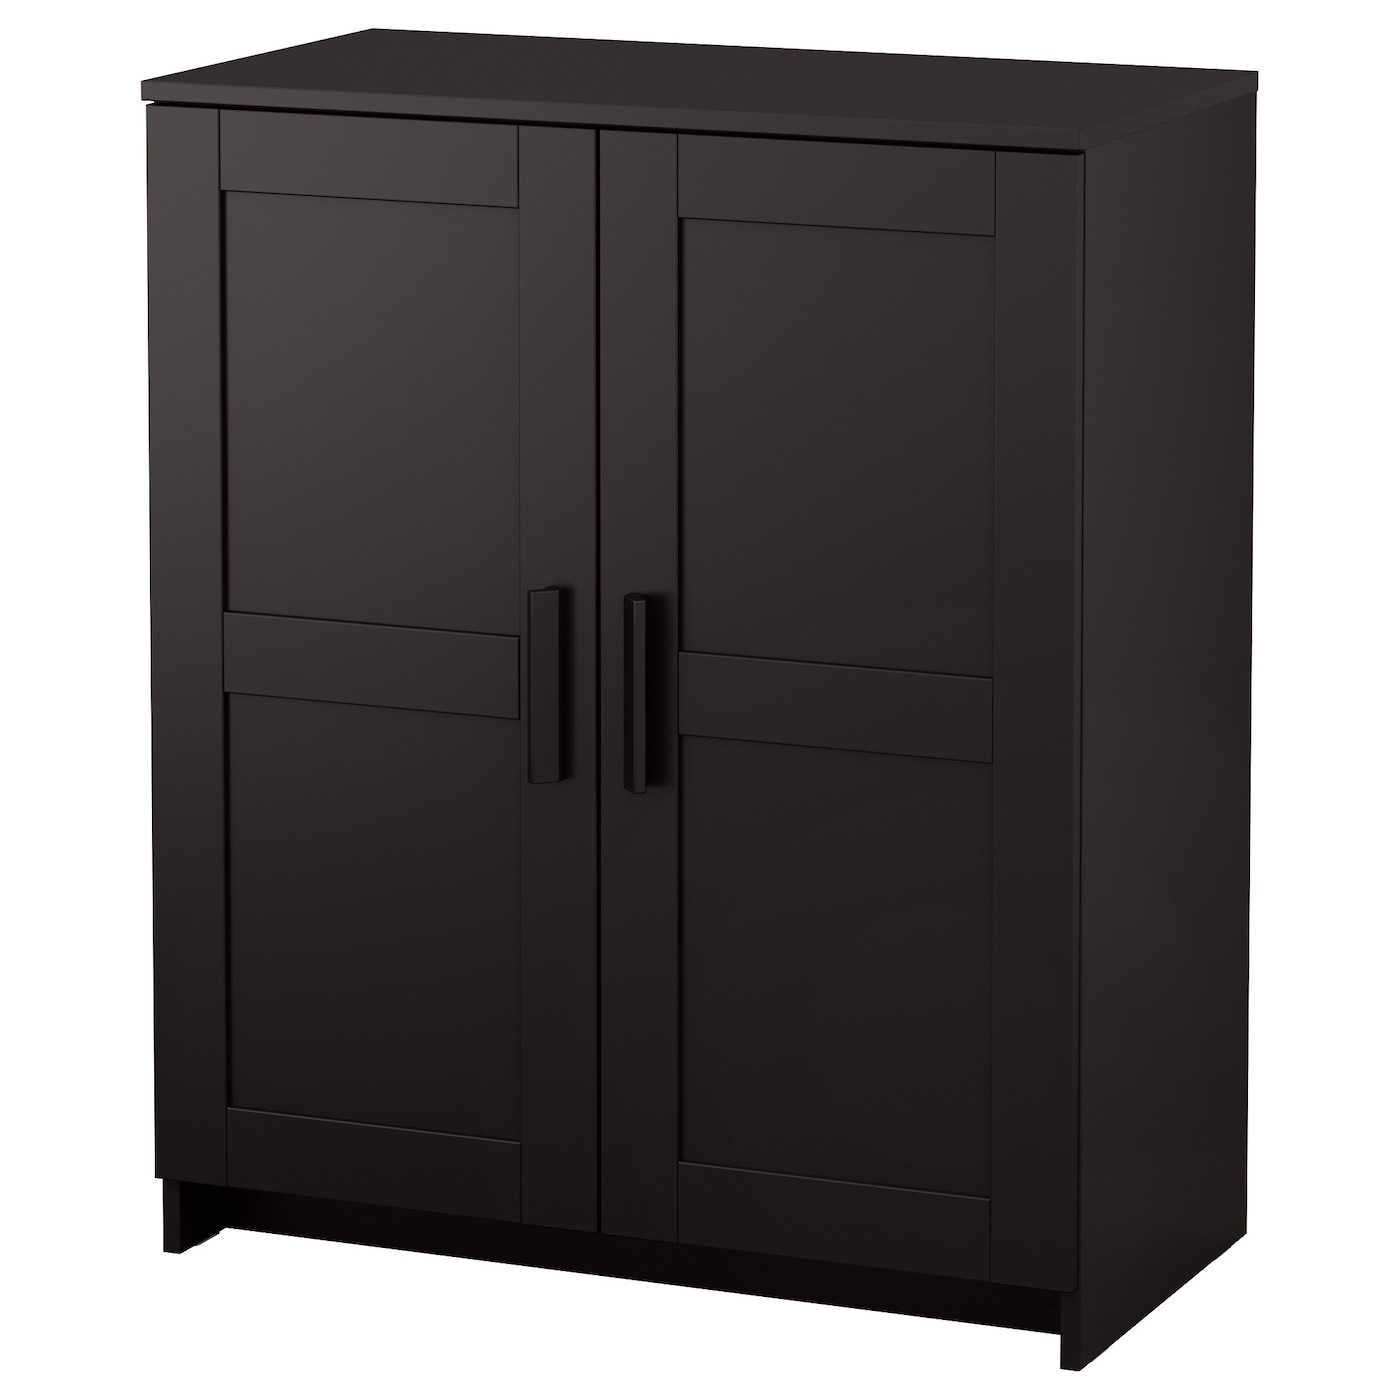 Brimnes cabinet with doors black 78x95 cm ikea for Sideboard niedrig